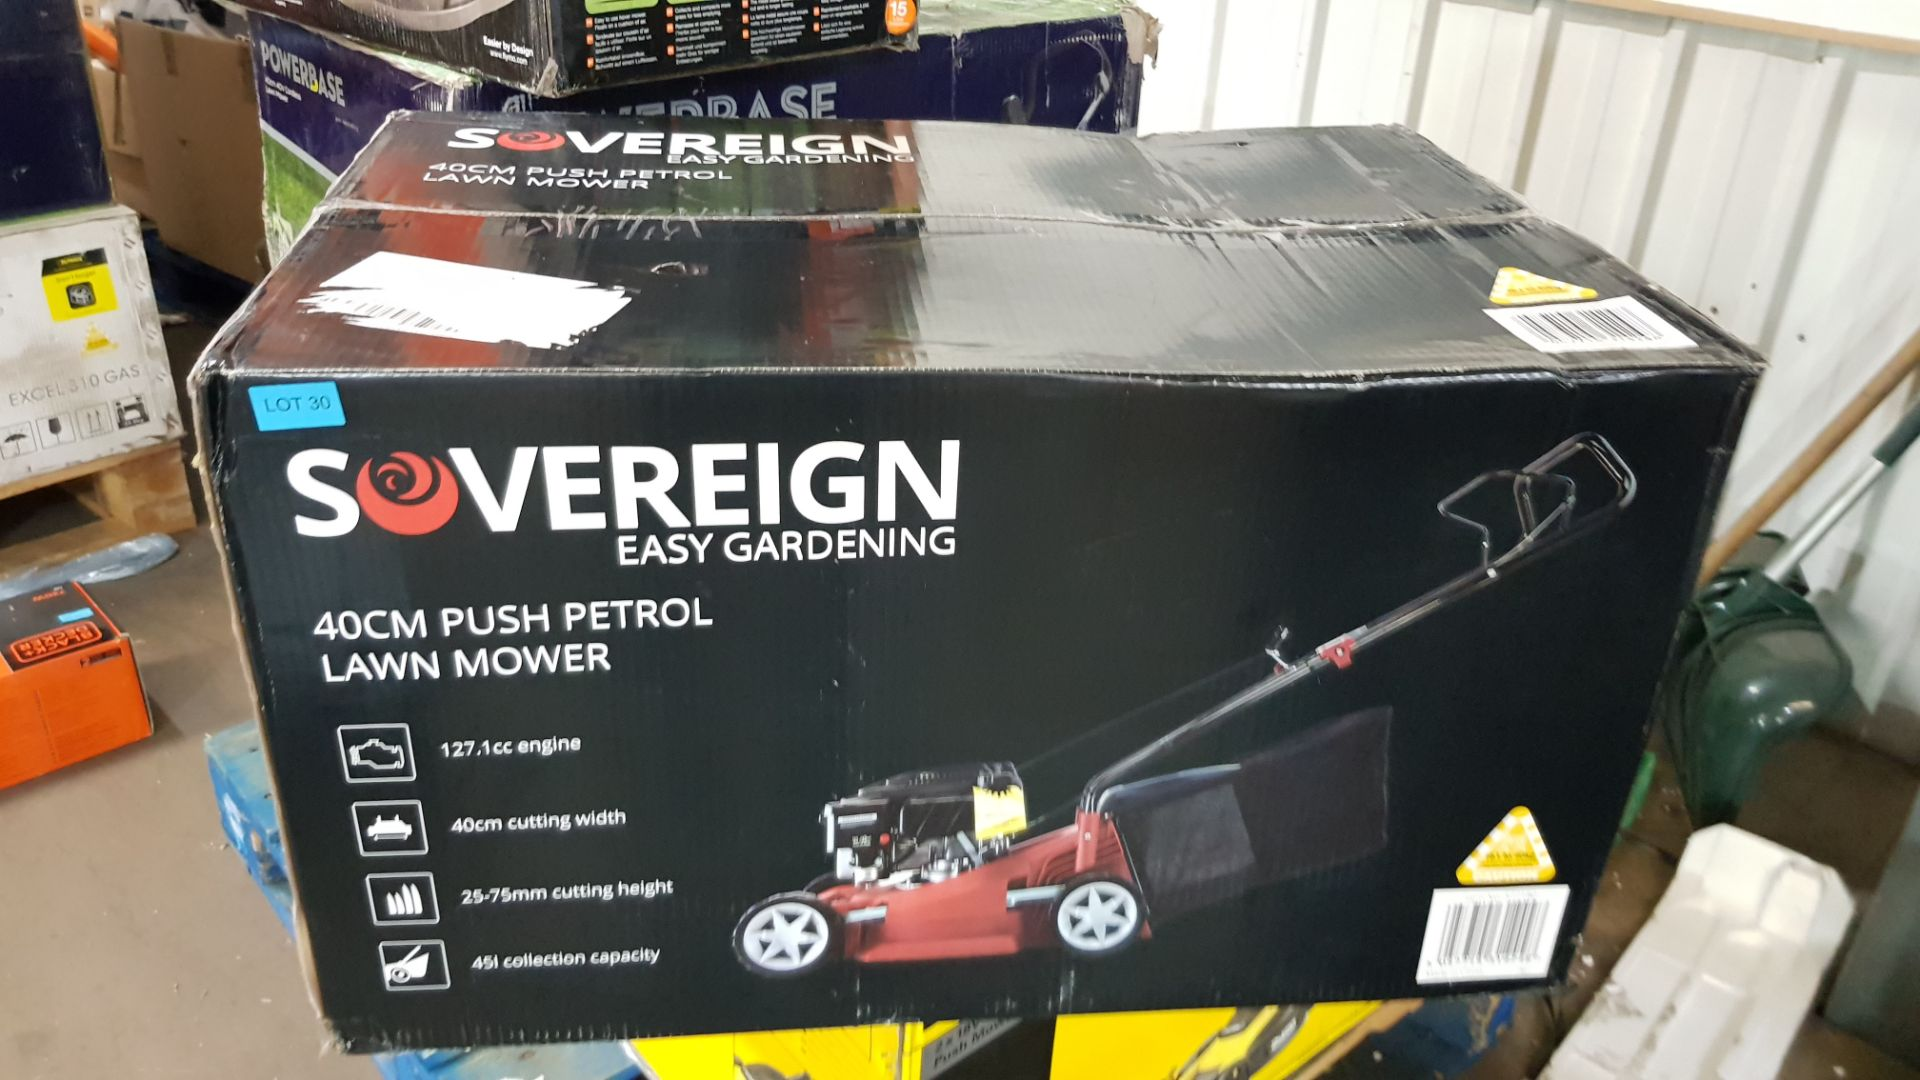 (P10) 1x Sovereign 40cm Push Petrol Lawn Mower 127cc RRP £125. New, Sealed Item With Damage To Box - Image 3 of 5